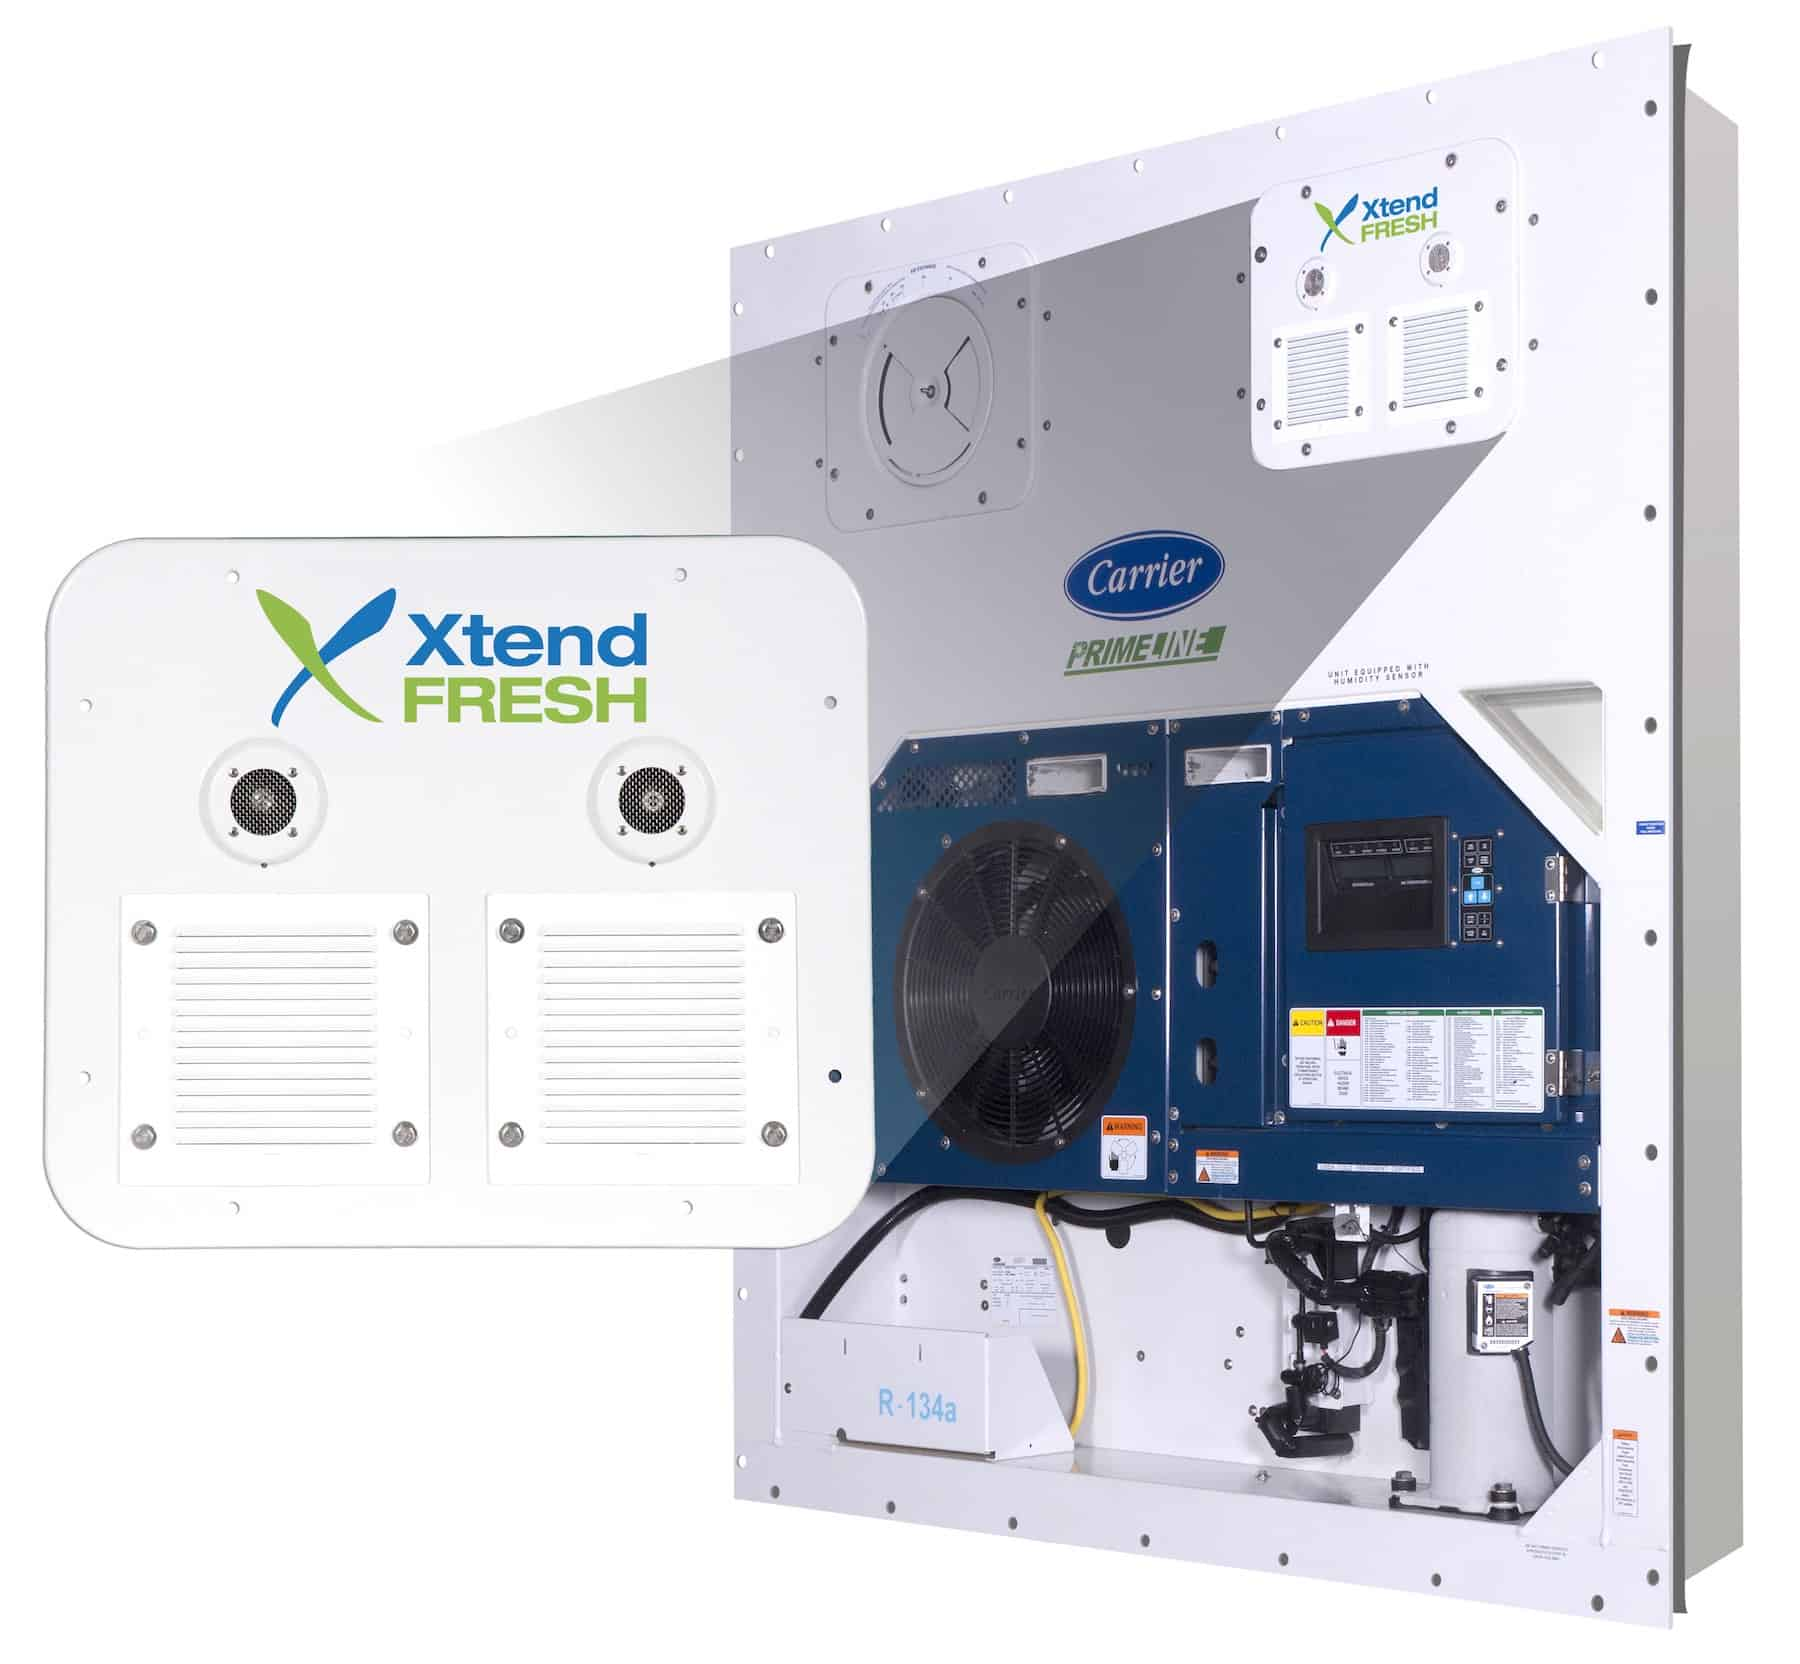 MSC orders 5,000 Carrier Transicold XtendFRESH systems